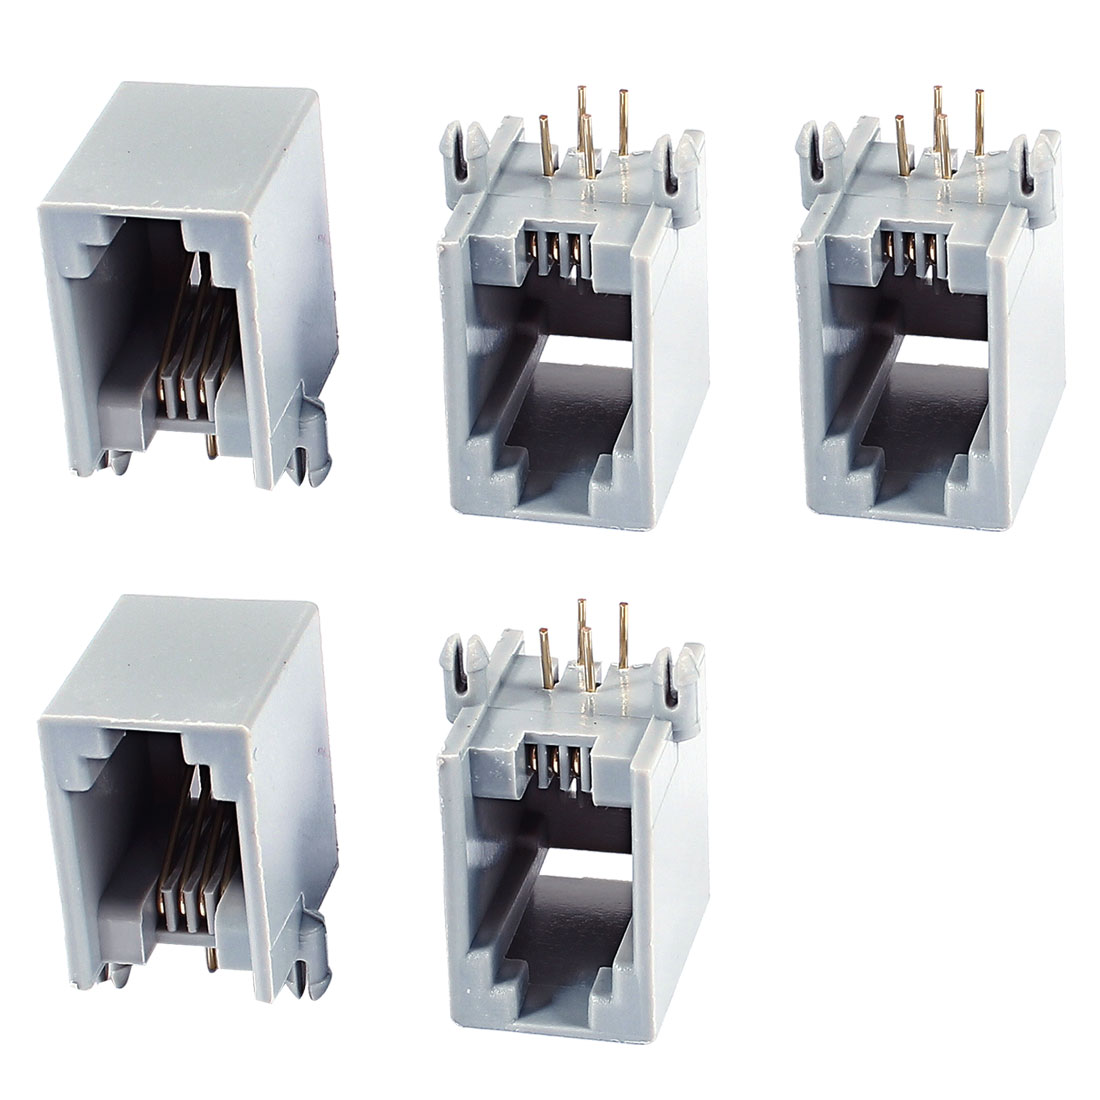 5 Pcs Gray Right Angle PCB Mount Telephone RJ11 4P4C Modular Jack Side Entry